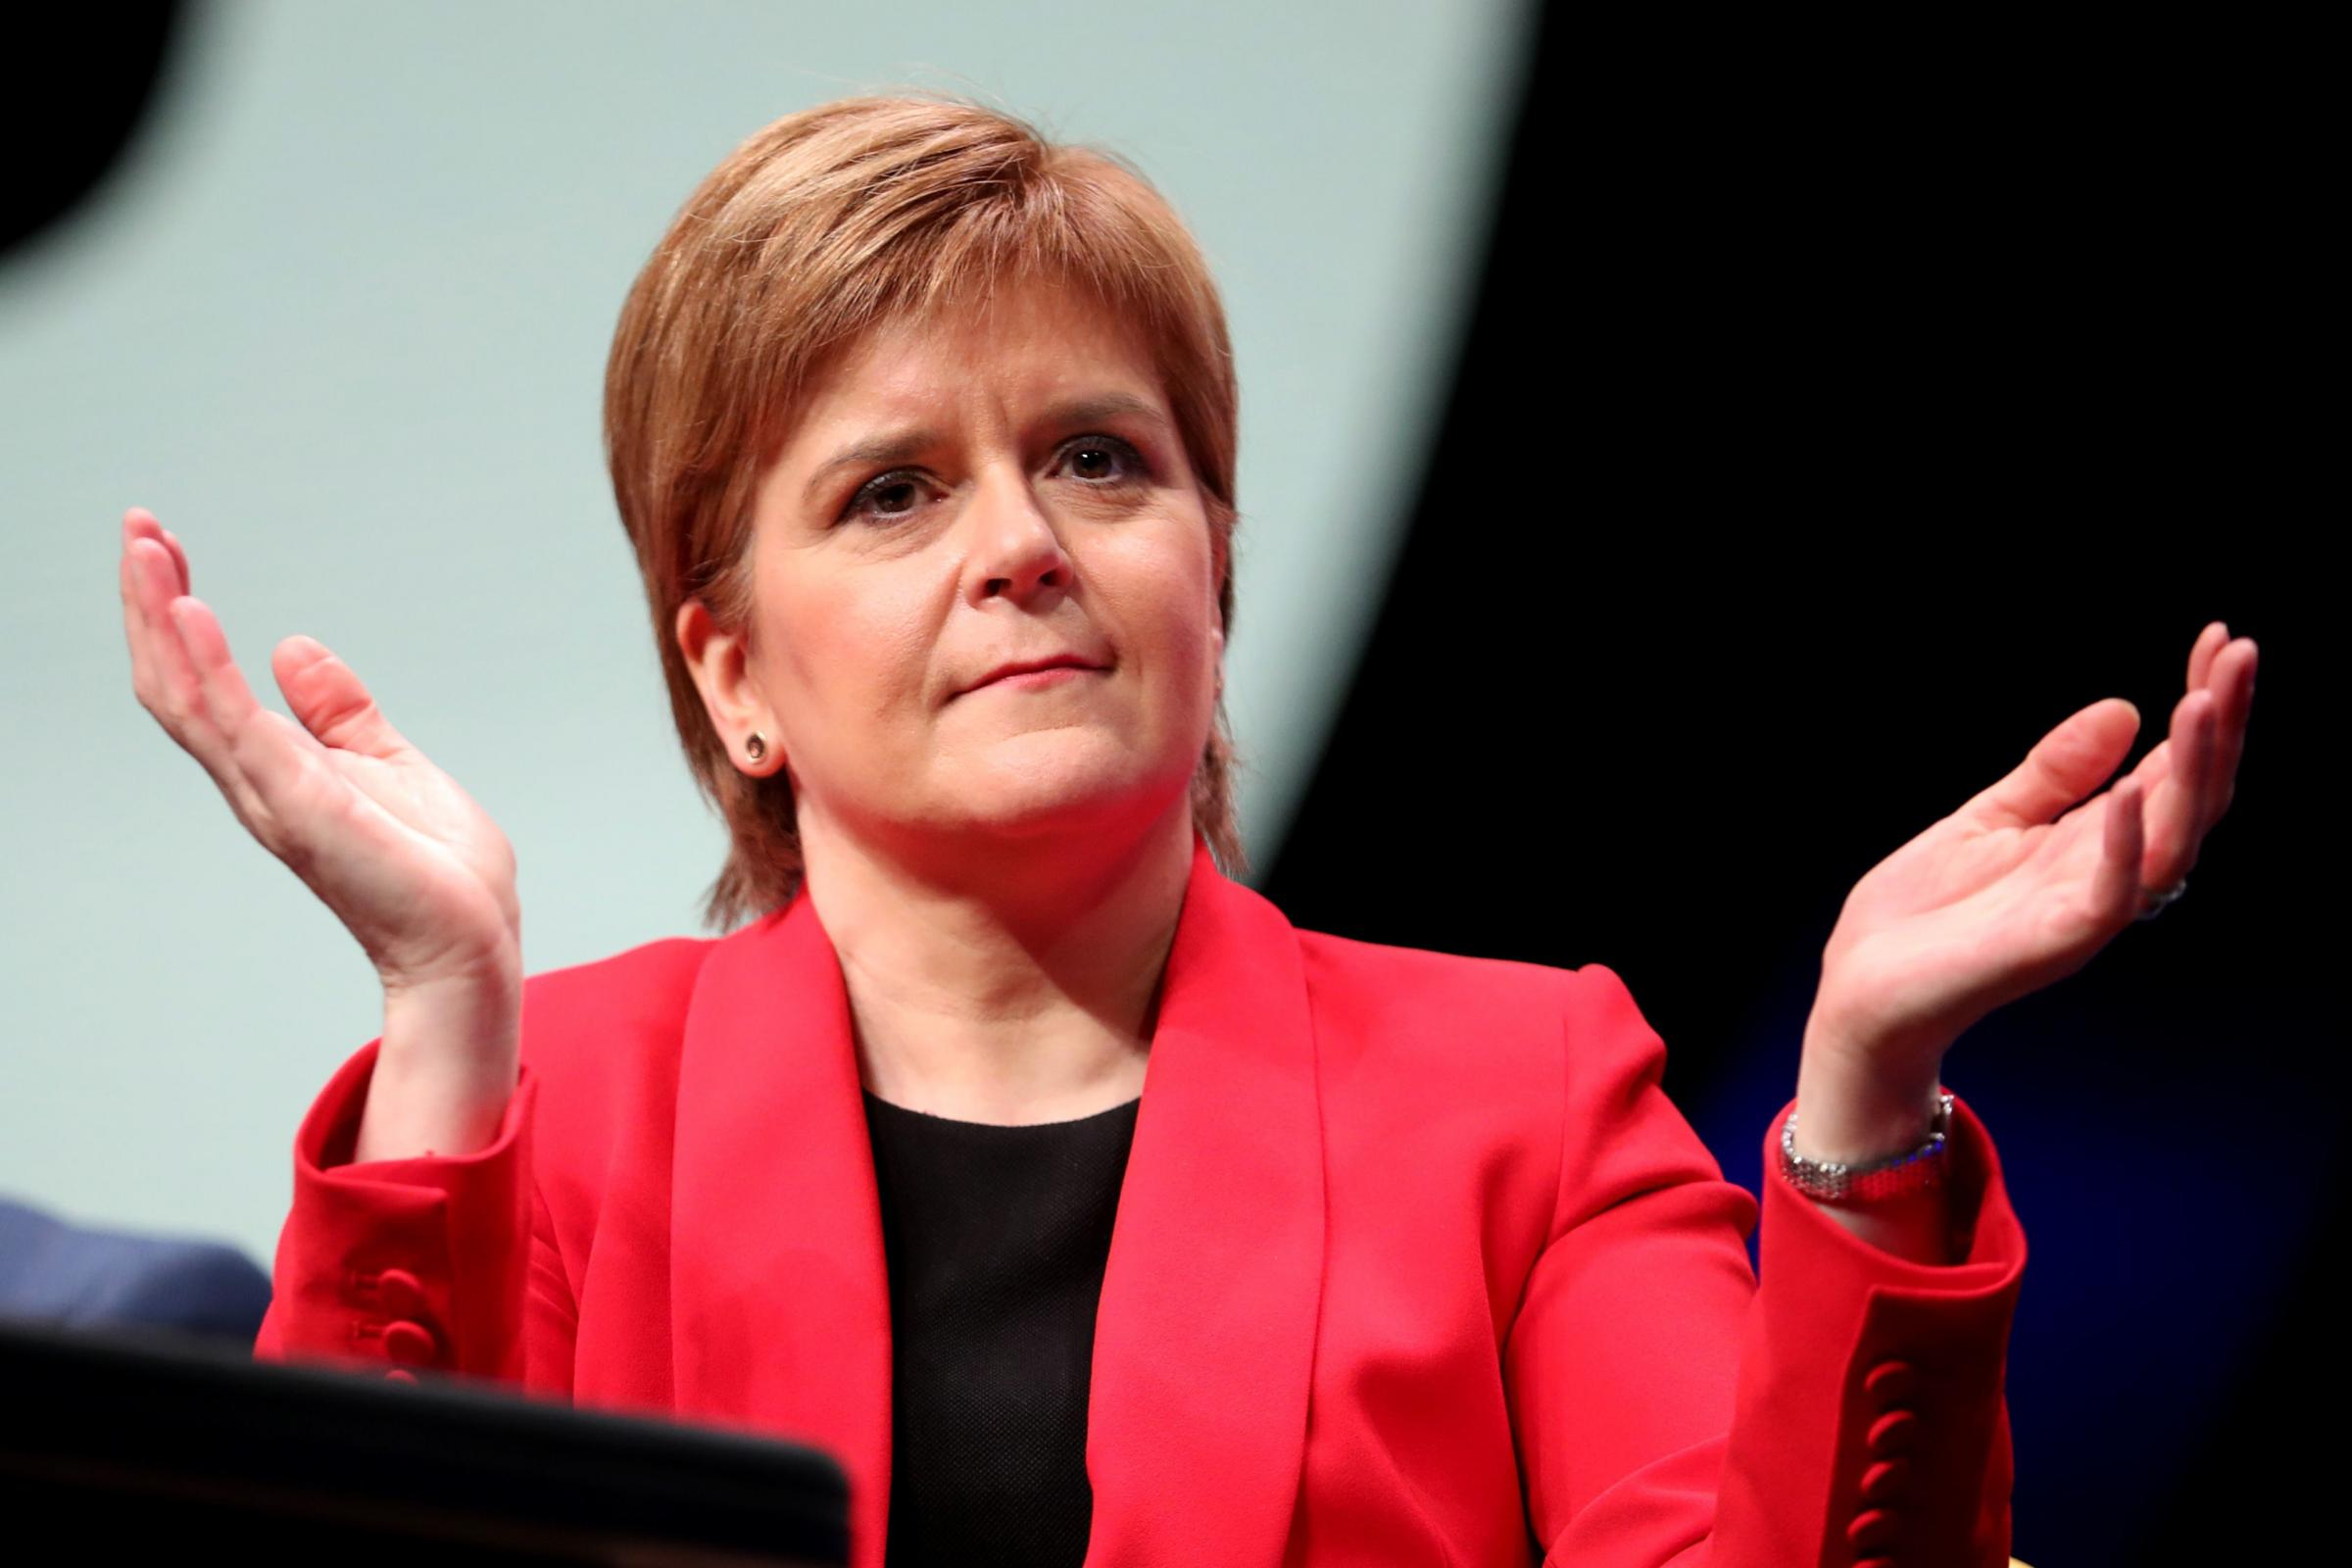 There have been calls for First Minister Nicola Sturgeon to take place in a TV debate on Brexit